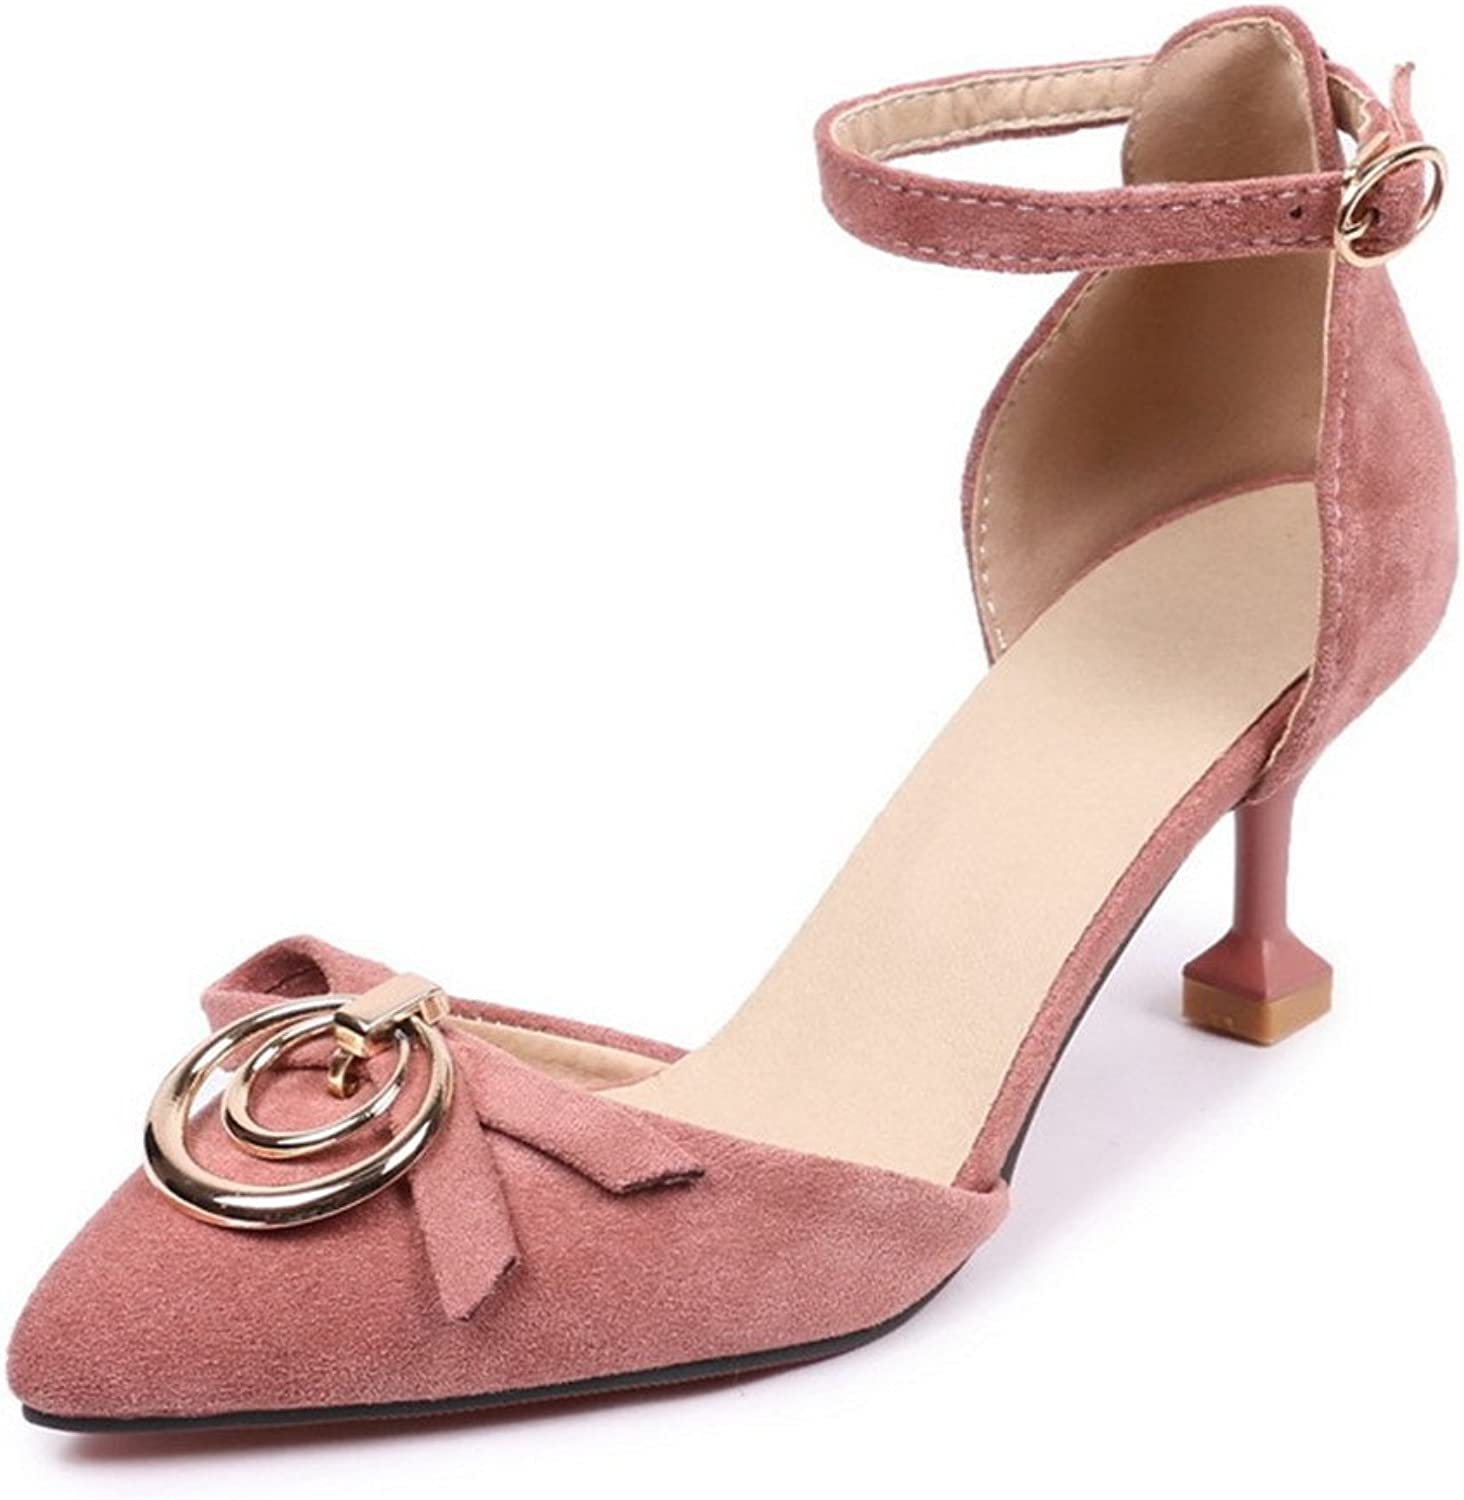 Women's Summer Sandals Fashion Stiletto Heel Toe Ankle High Heels Pumps Large Size Party shoes Large Size 34-43